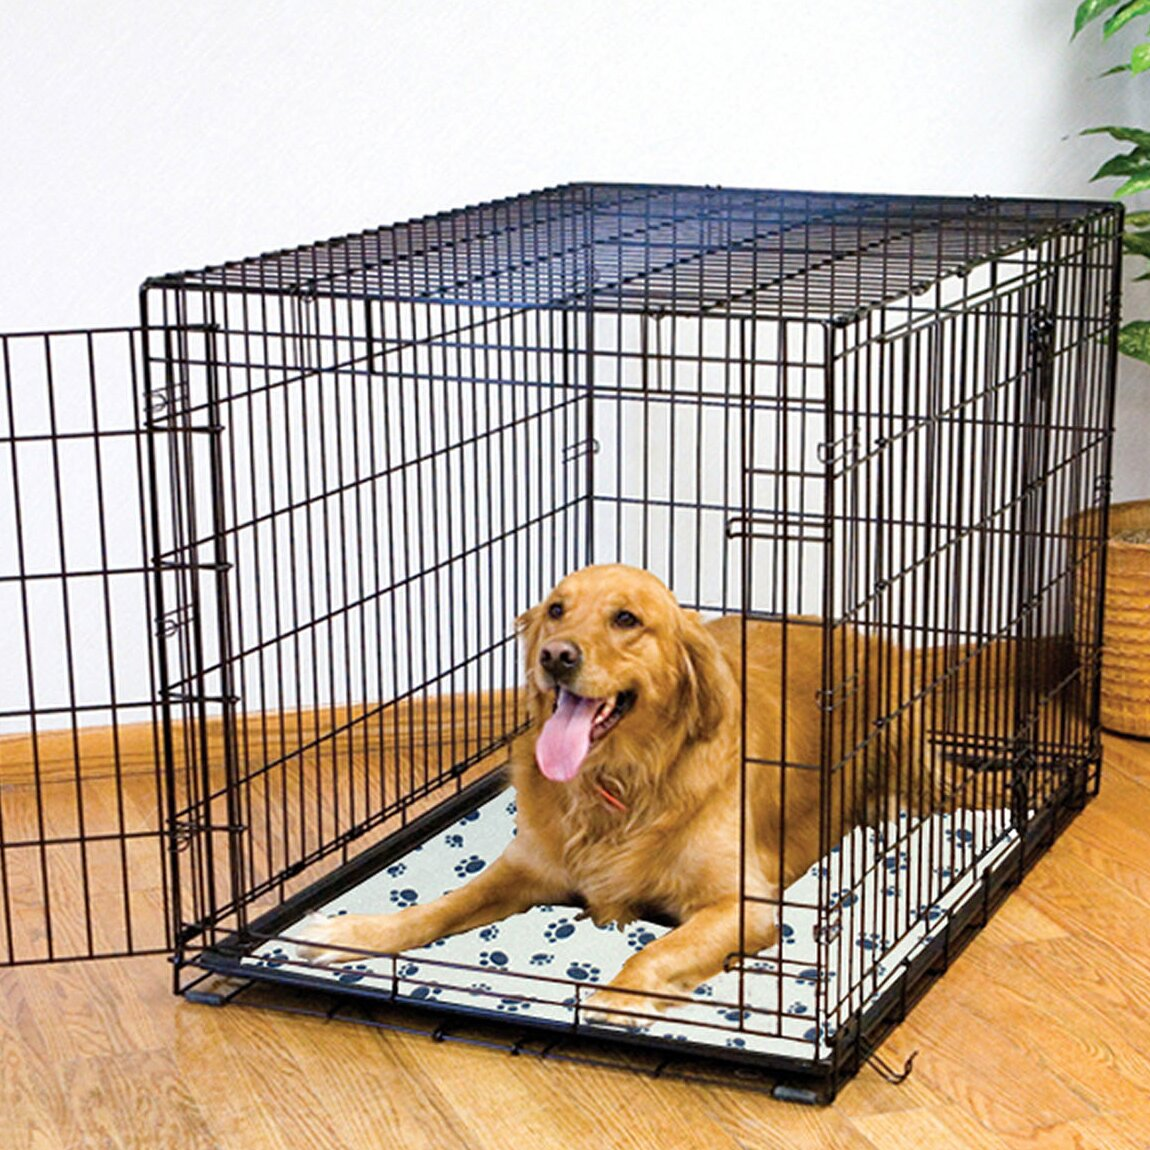 Master Paws Dog Kennel Reviews